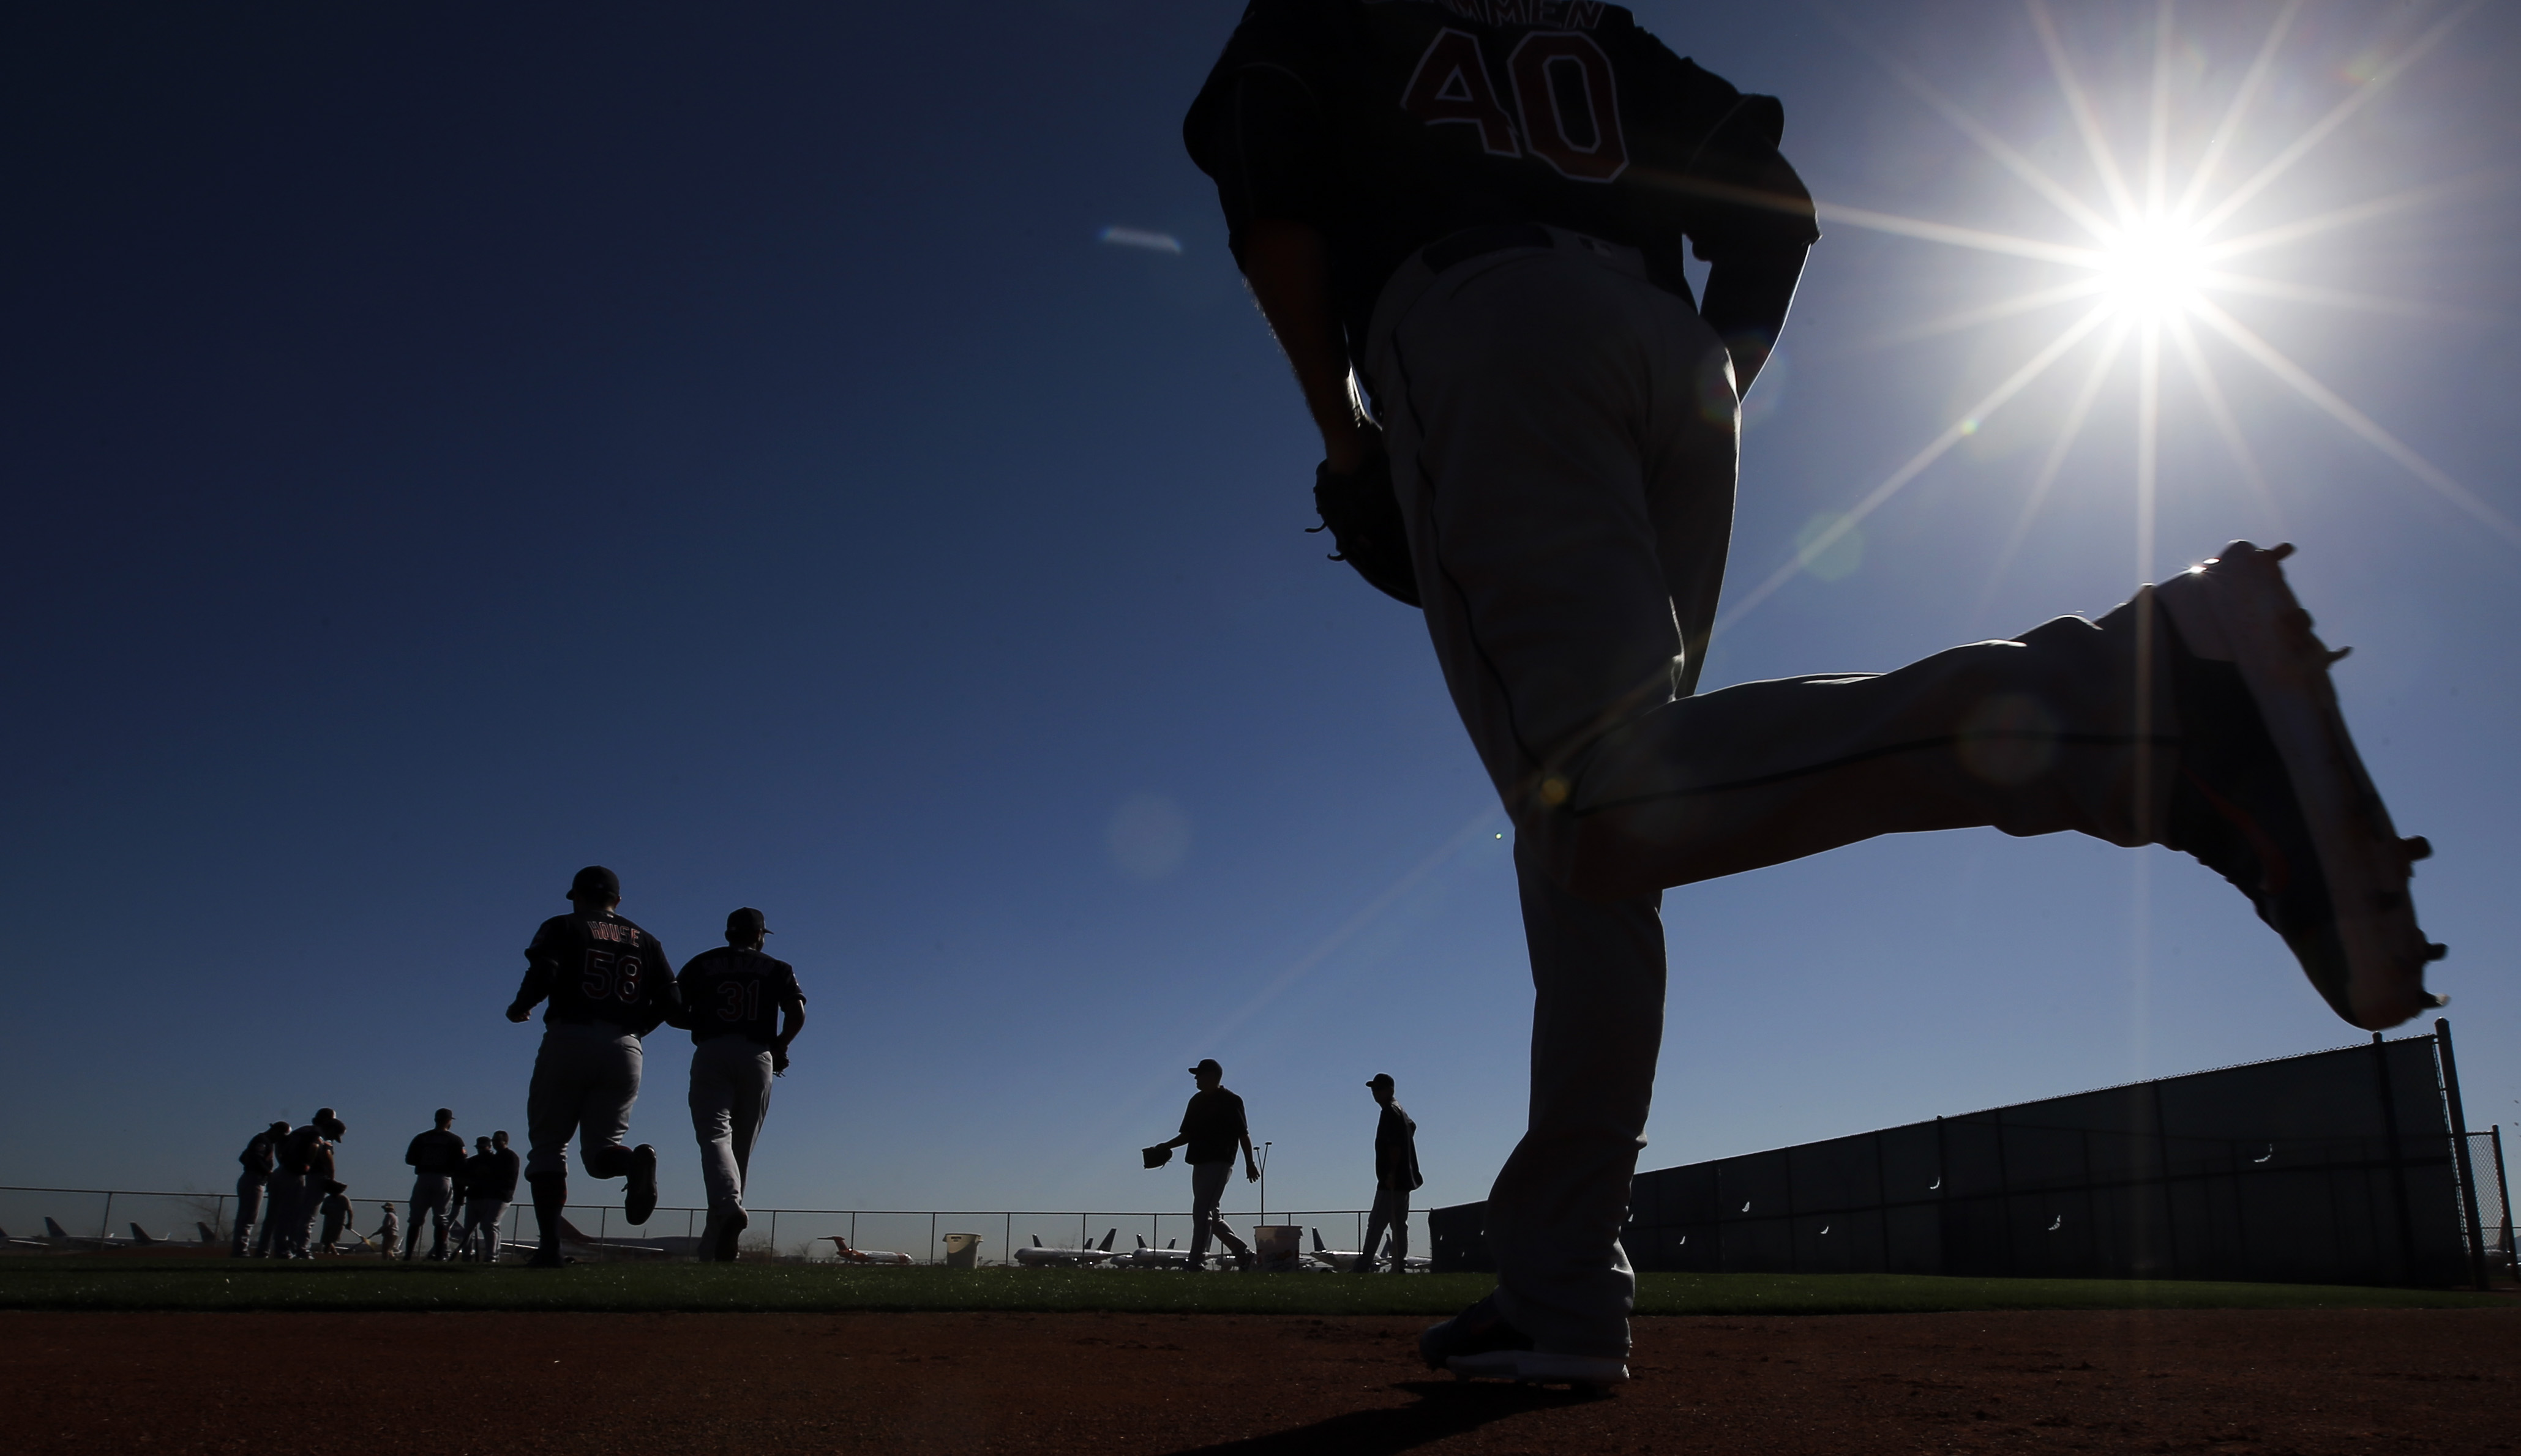 Cleveland Indians players make their way to a practice field for a spring training baseball workout Monday, Feb. 22, 2016, in Goodyear, Ariz. (AP Photo/Morry Gash)